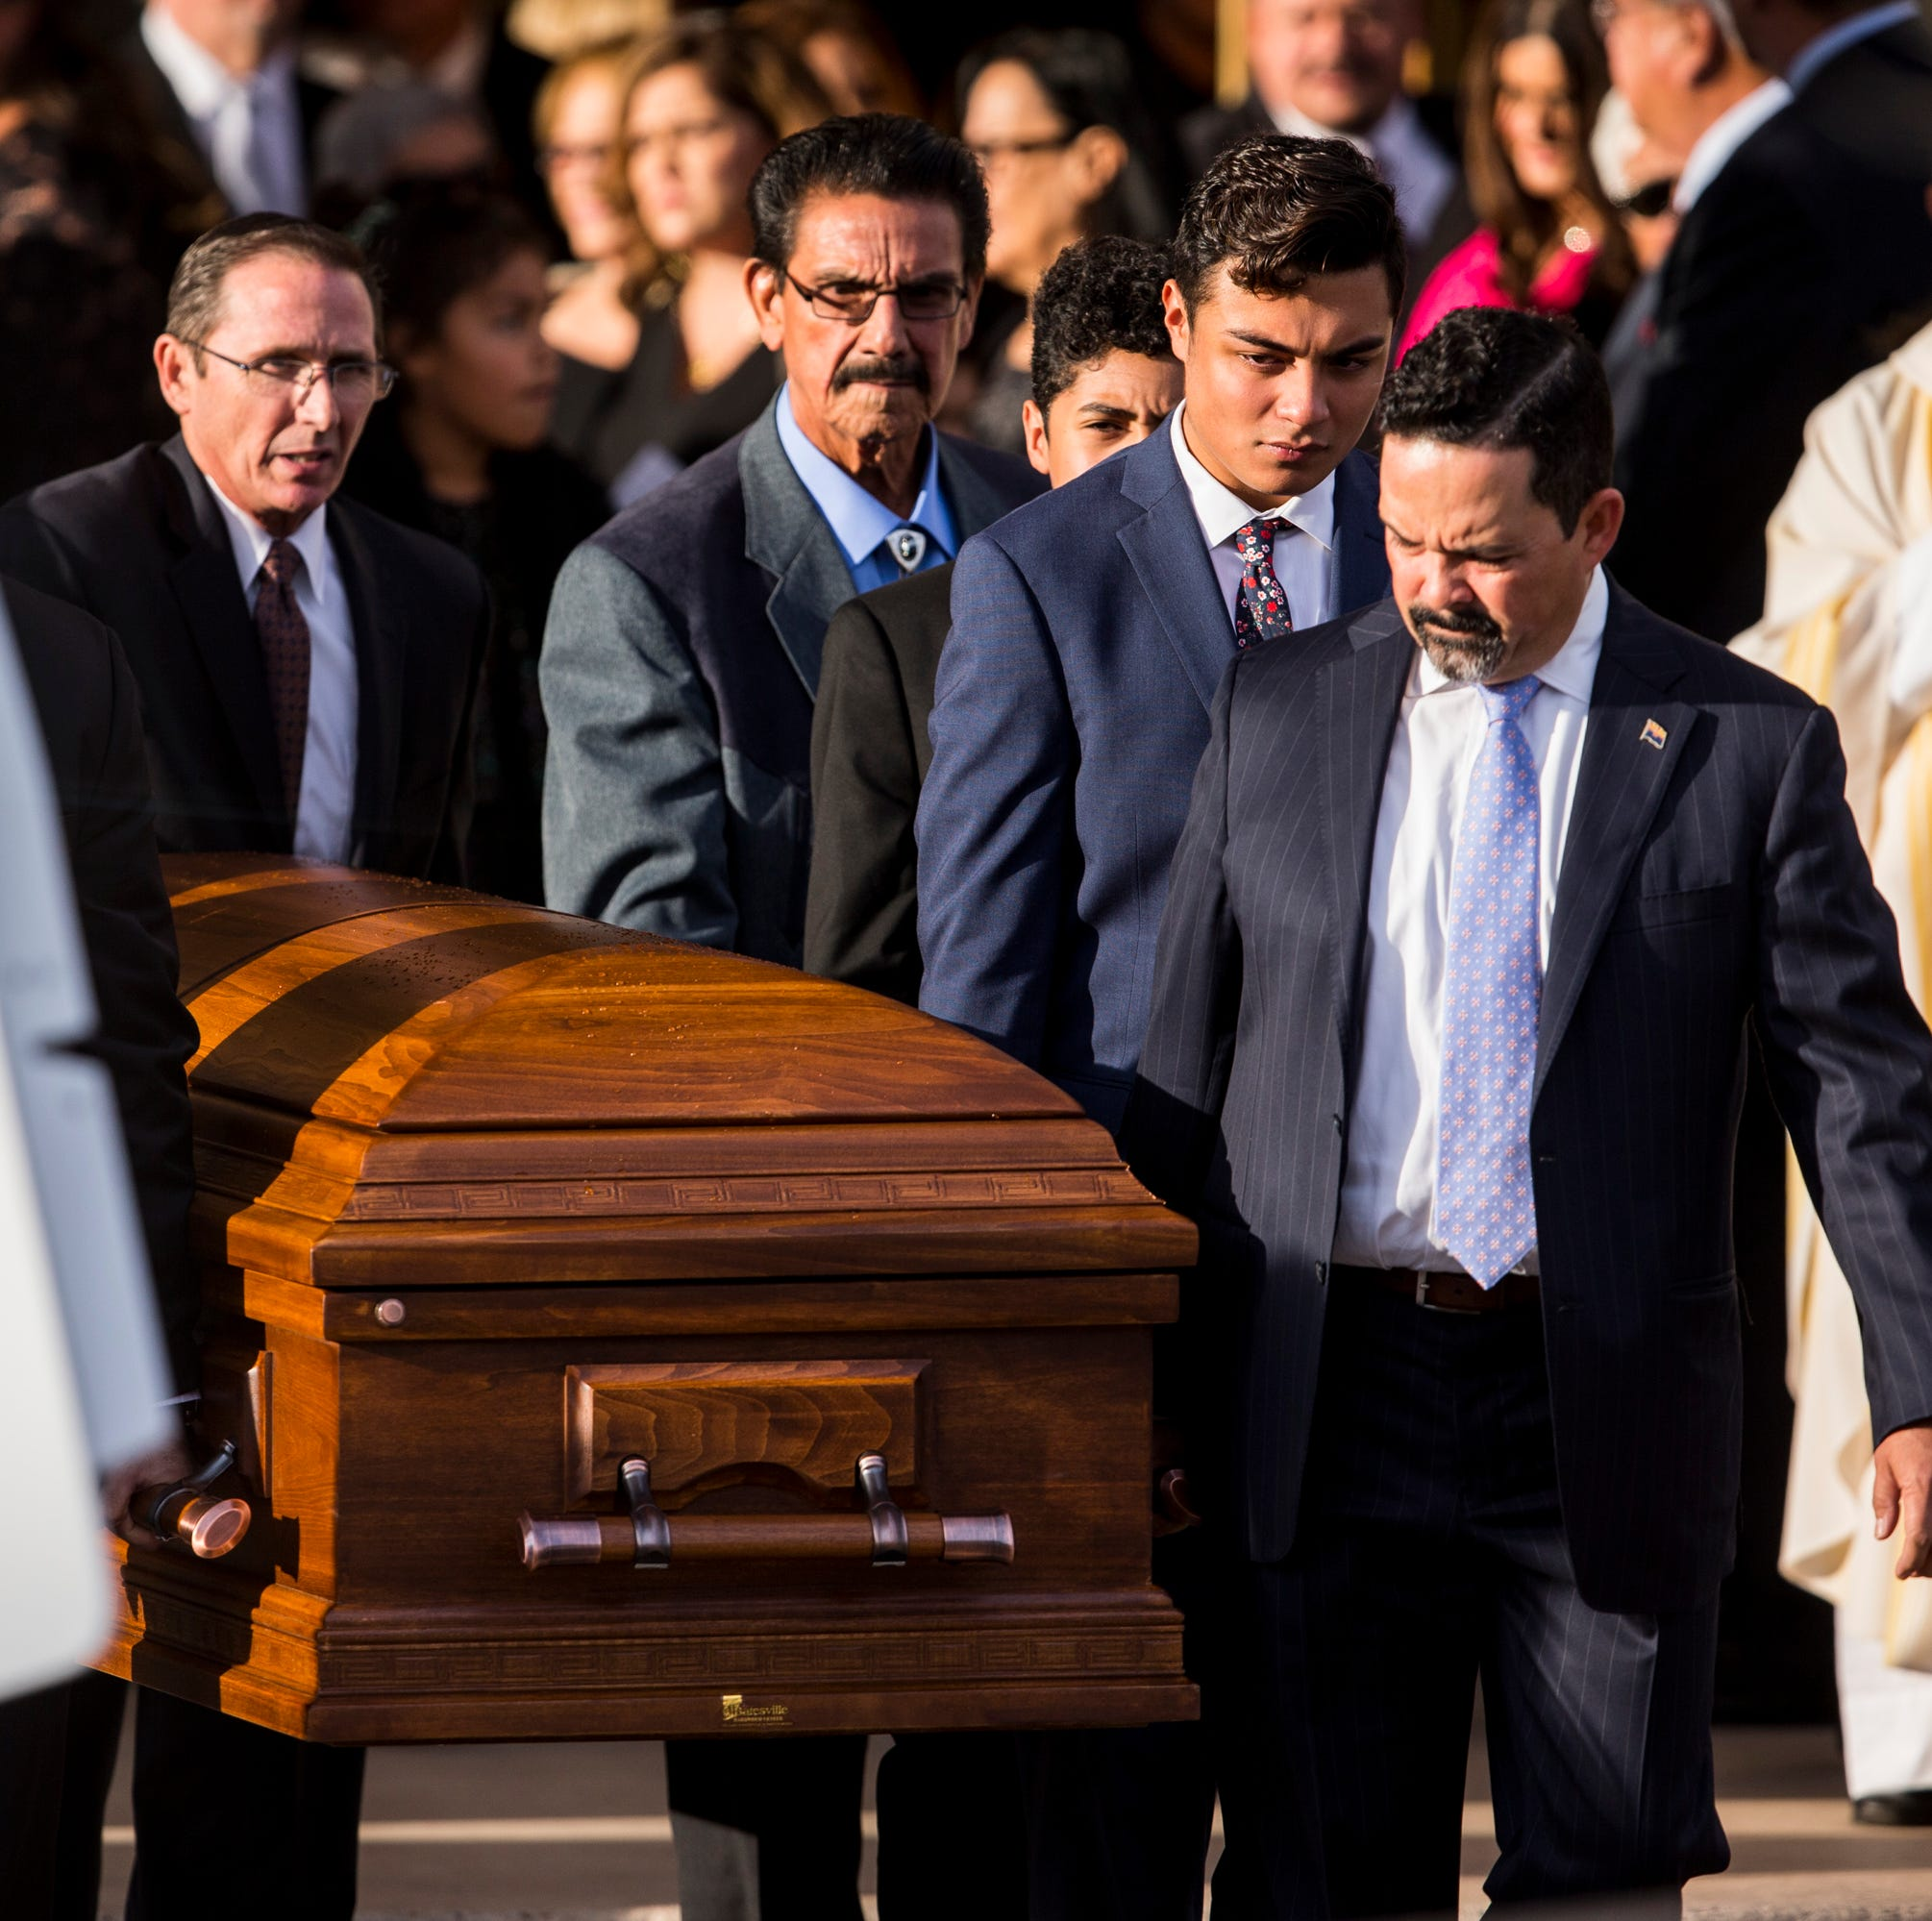 Ed Pastor, Arizona's first Latino congressman, recalled as humble, effective at funeral